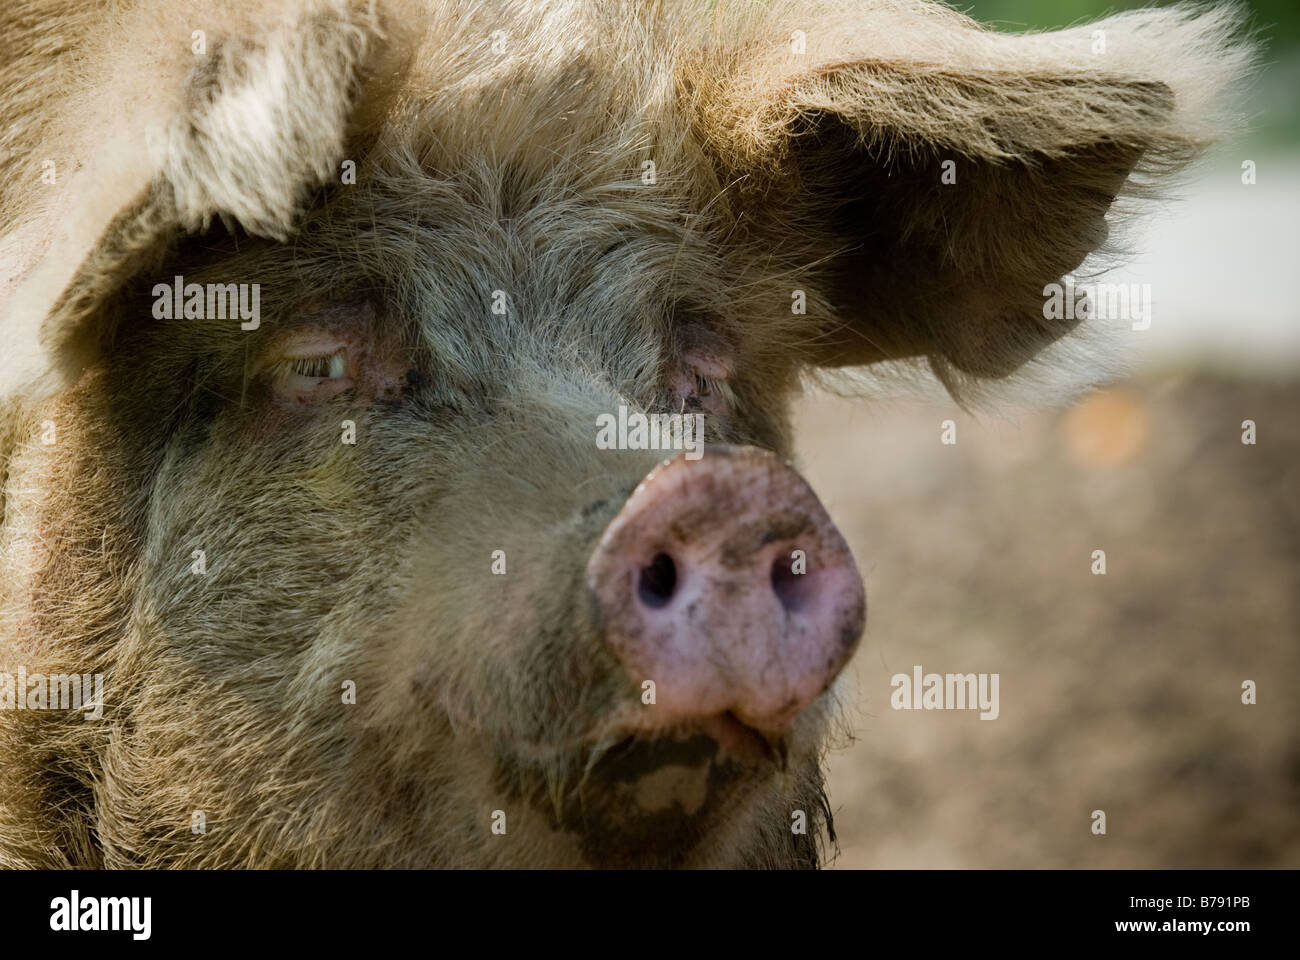 close up of pig looking to camera - Stock Image